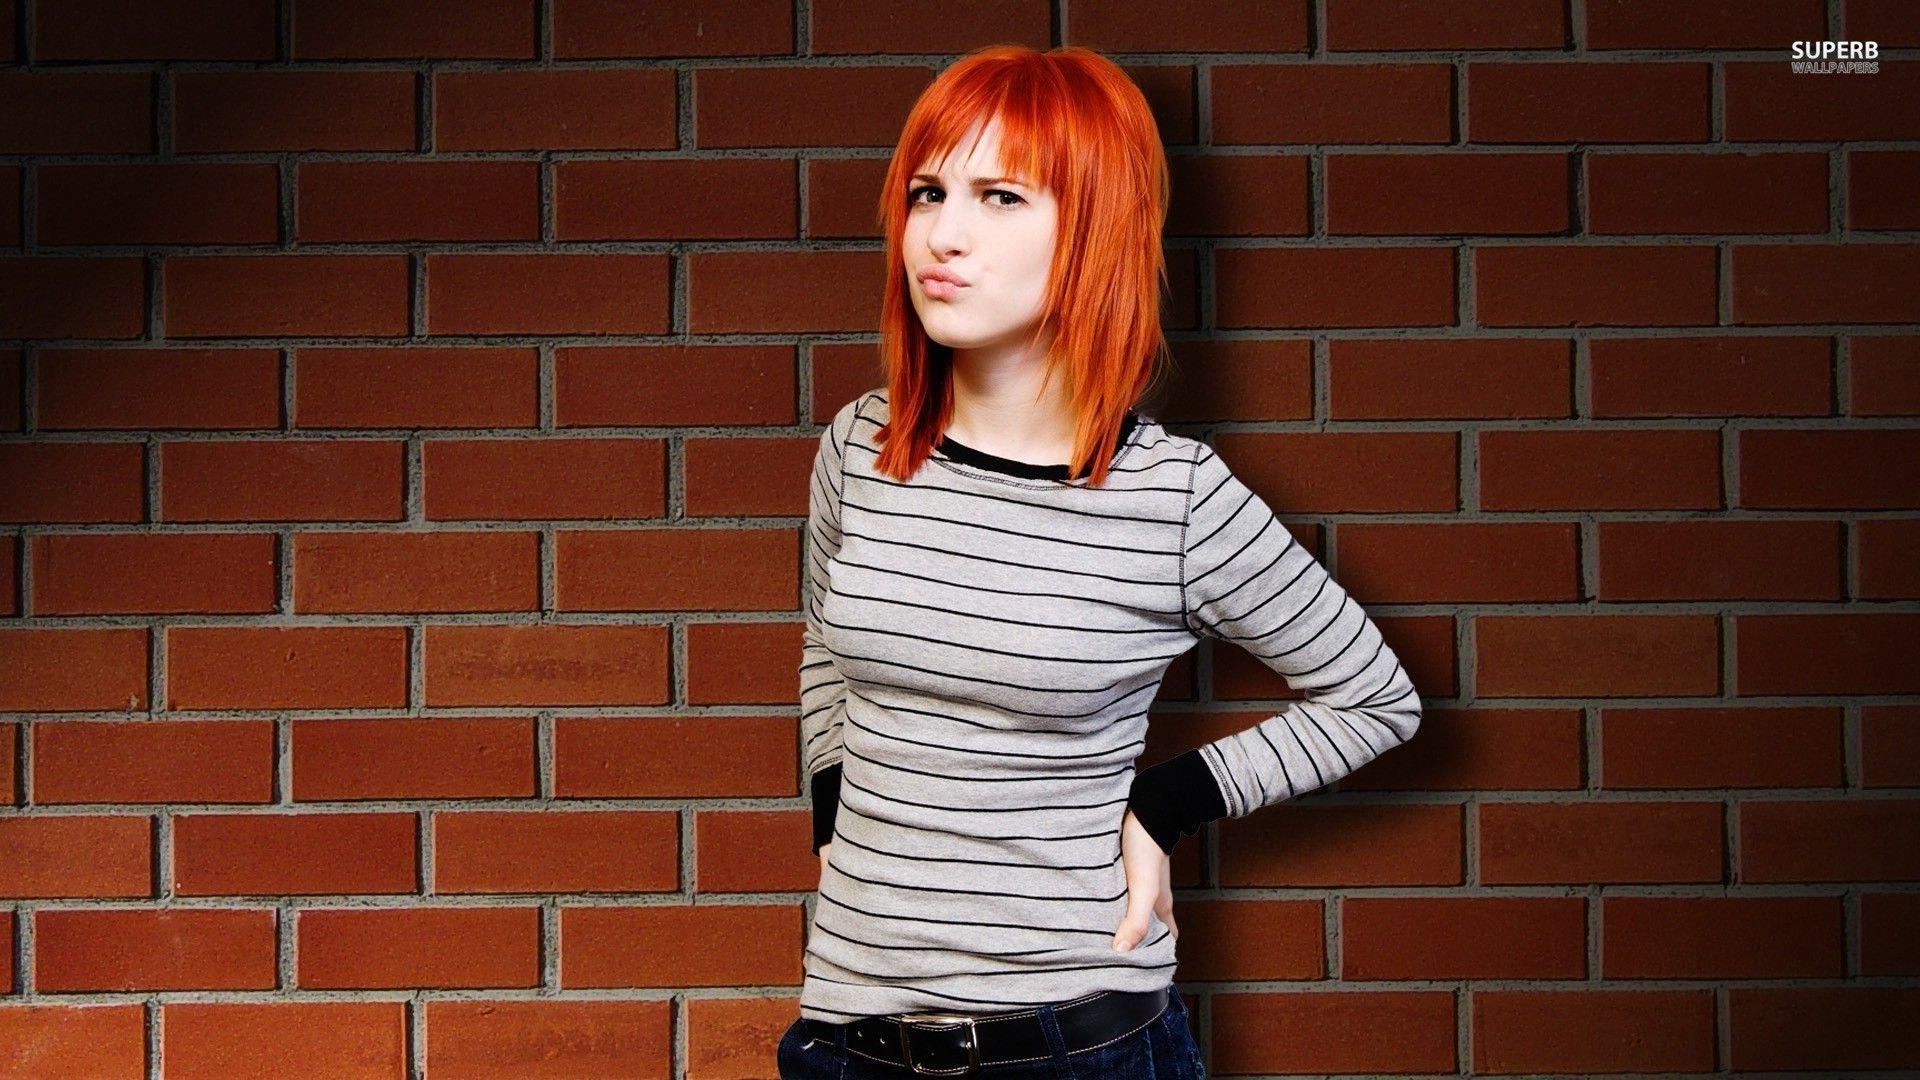 Hayley Williams Desktop Wallpapers 1920x1080